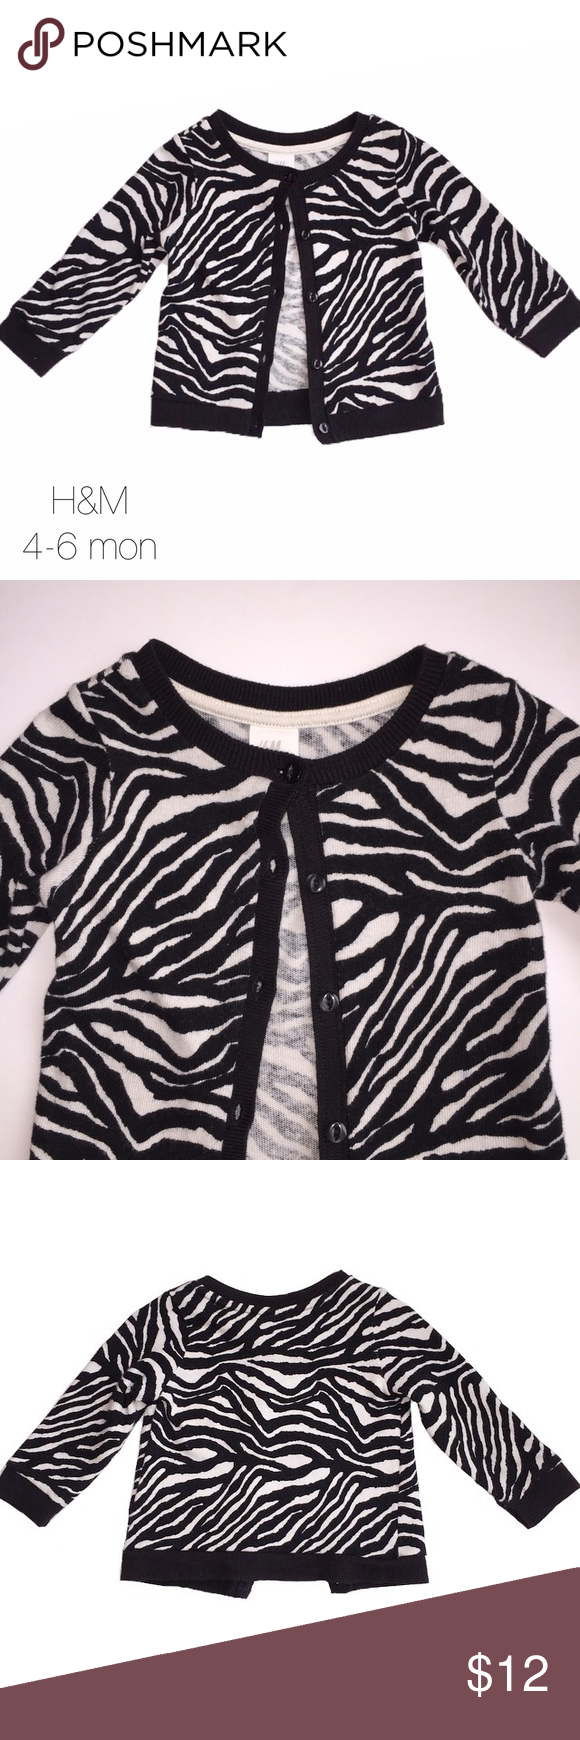 H&M Black White Zebra Cardigan 4-6 mon Very gently worn H&M Black White Zebra Cardigan 4-6 mon H&M Shirts & Tops Sweaters